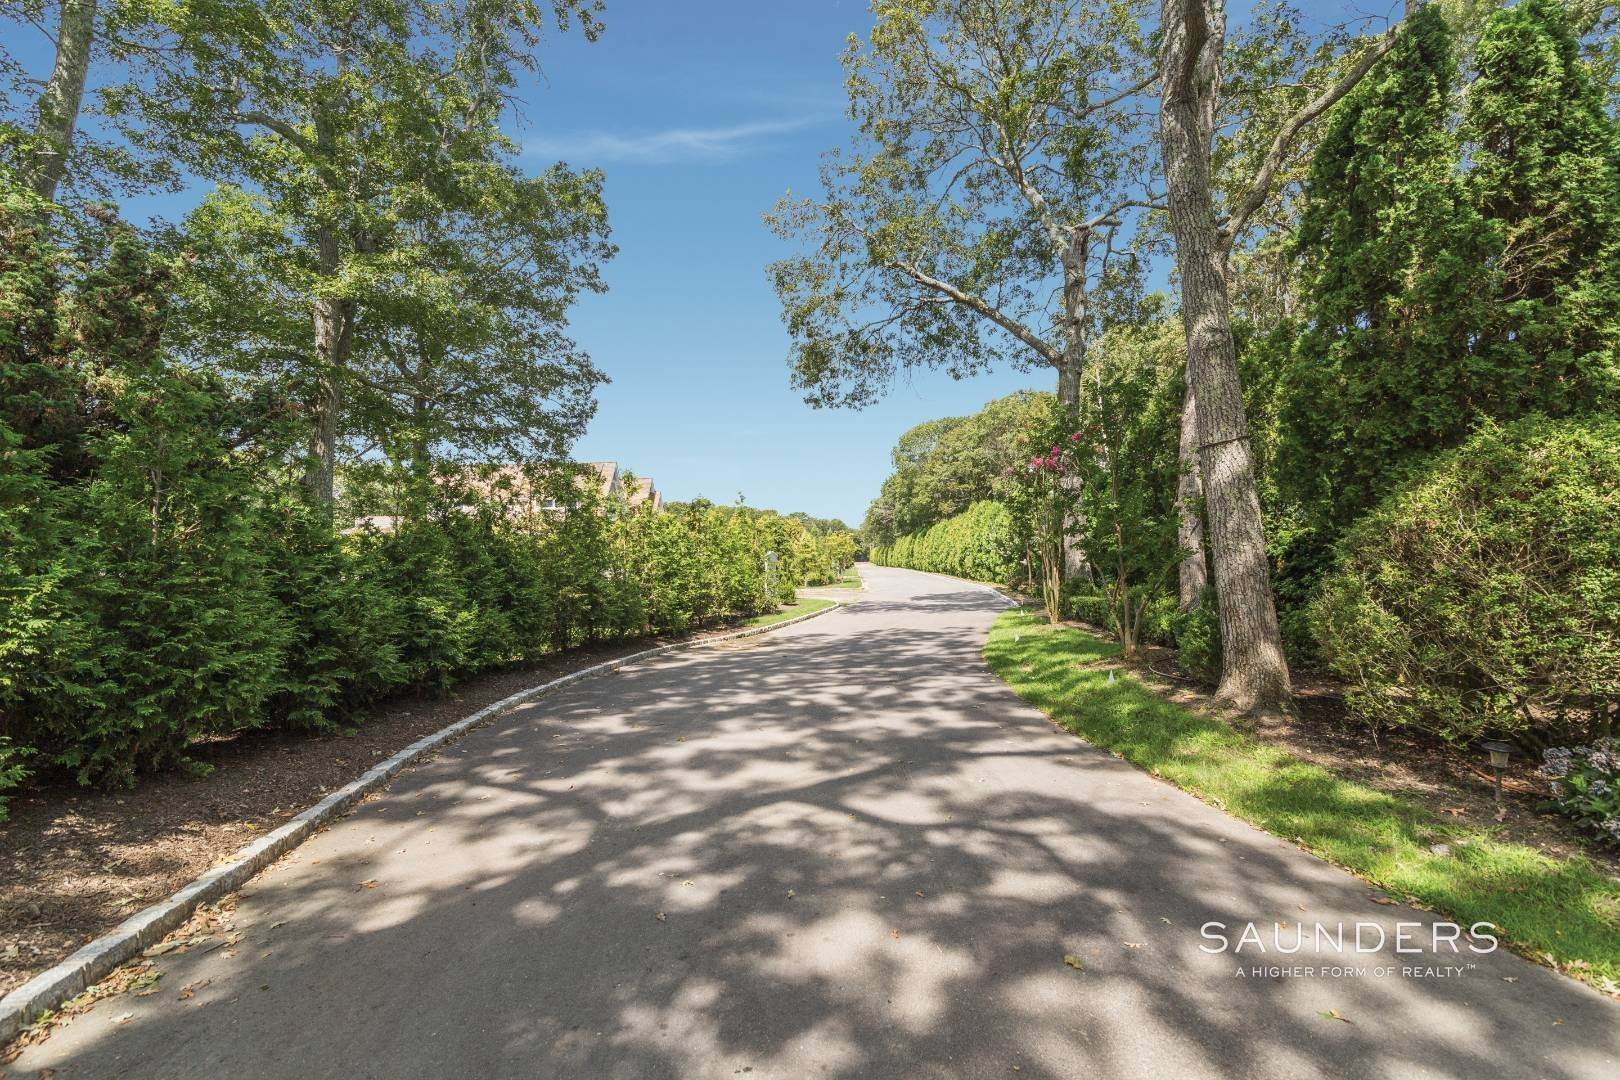 8. Land for Sale at Vacant Land Opportunity Center Of The Village Of Quogue 129 Montauk Highway, Quogue Village, Southampton Town, NY 11959